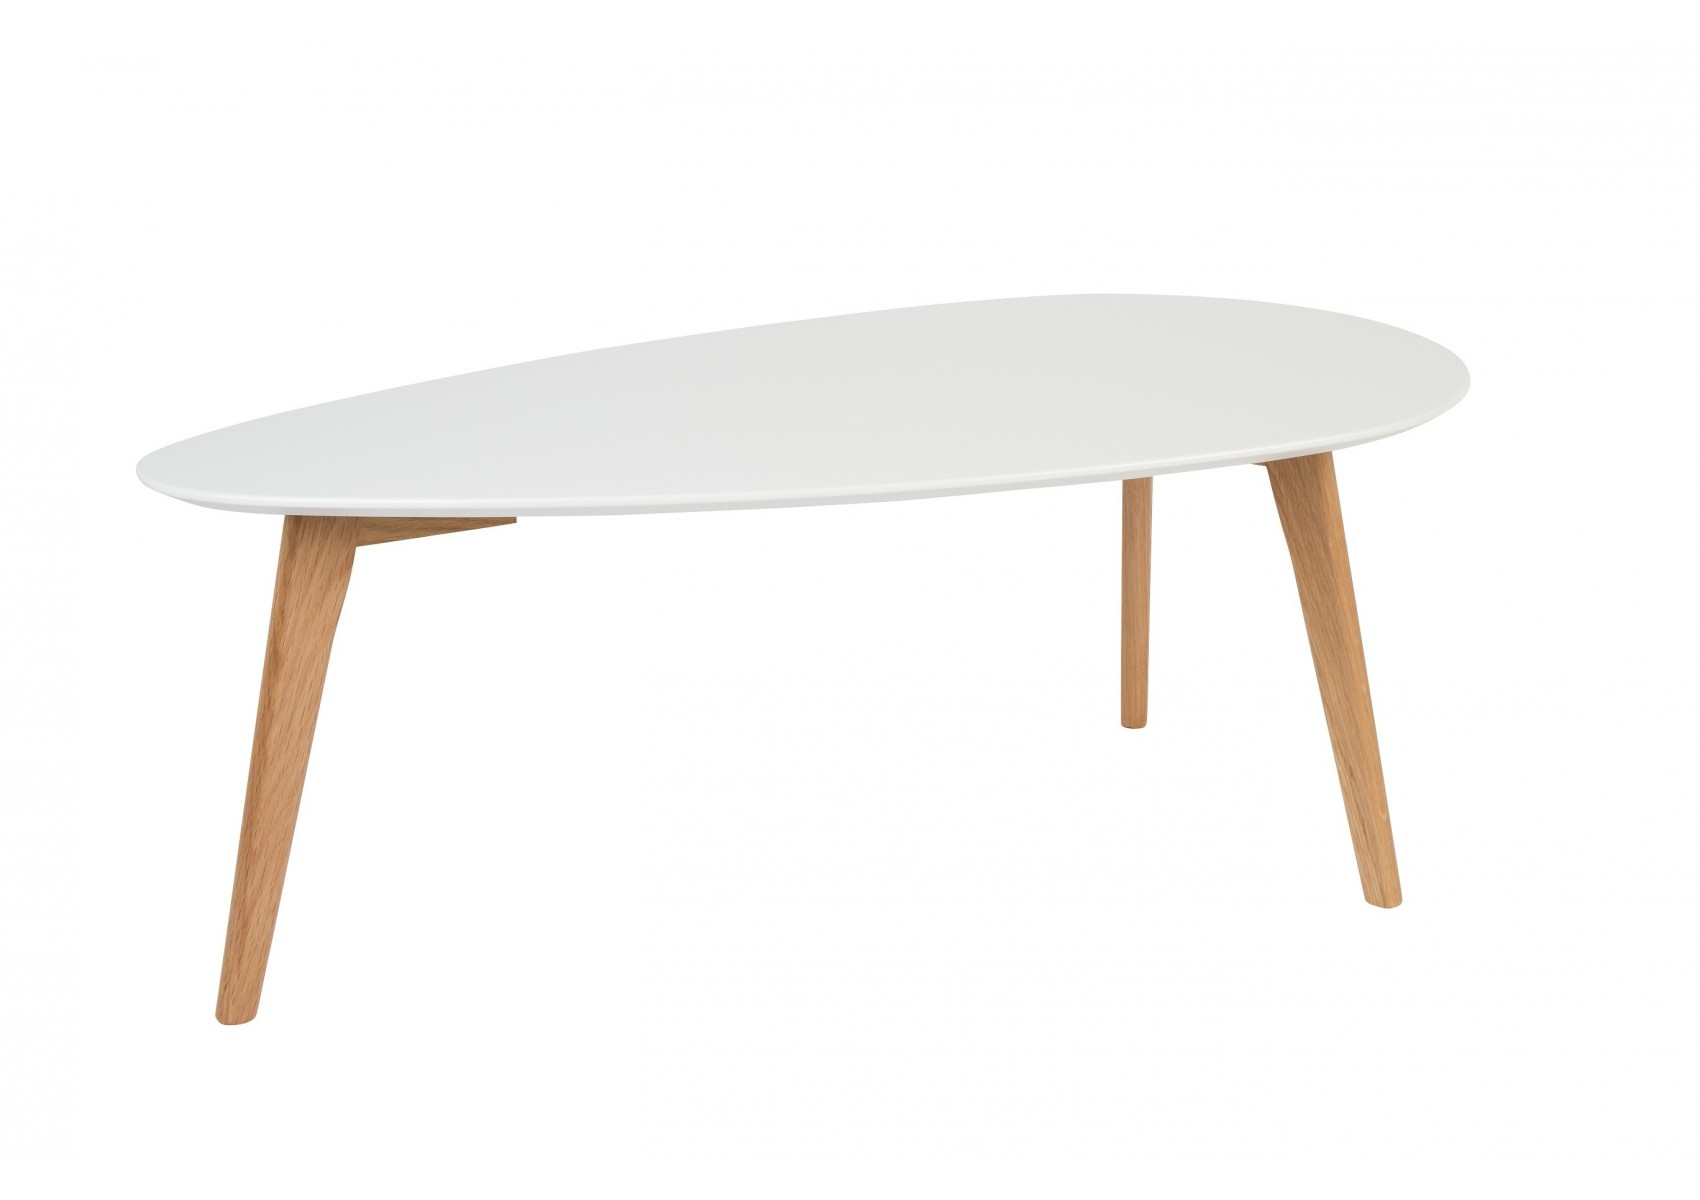 Tables basse scandinave drop laqu e blanche - Tables basses blanches ...